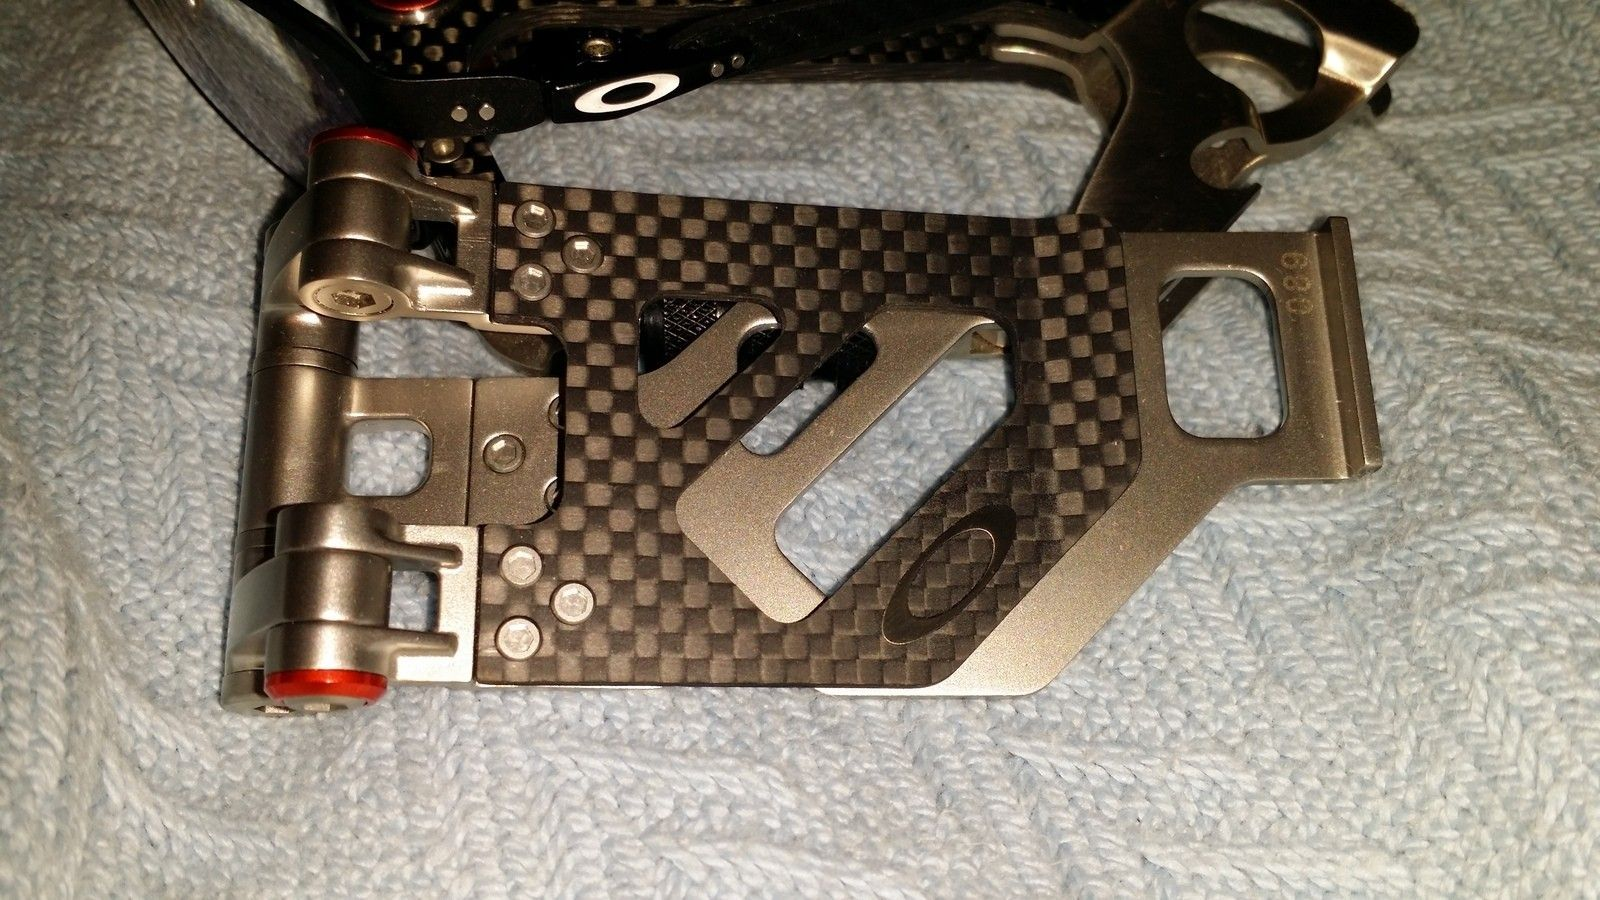 New carbon fiber clip - uploadfromtaptalk1432443045628.jpg